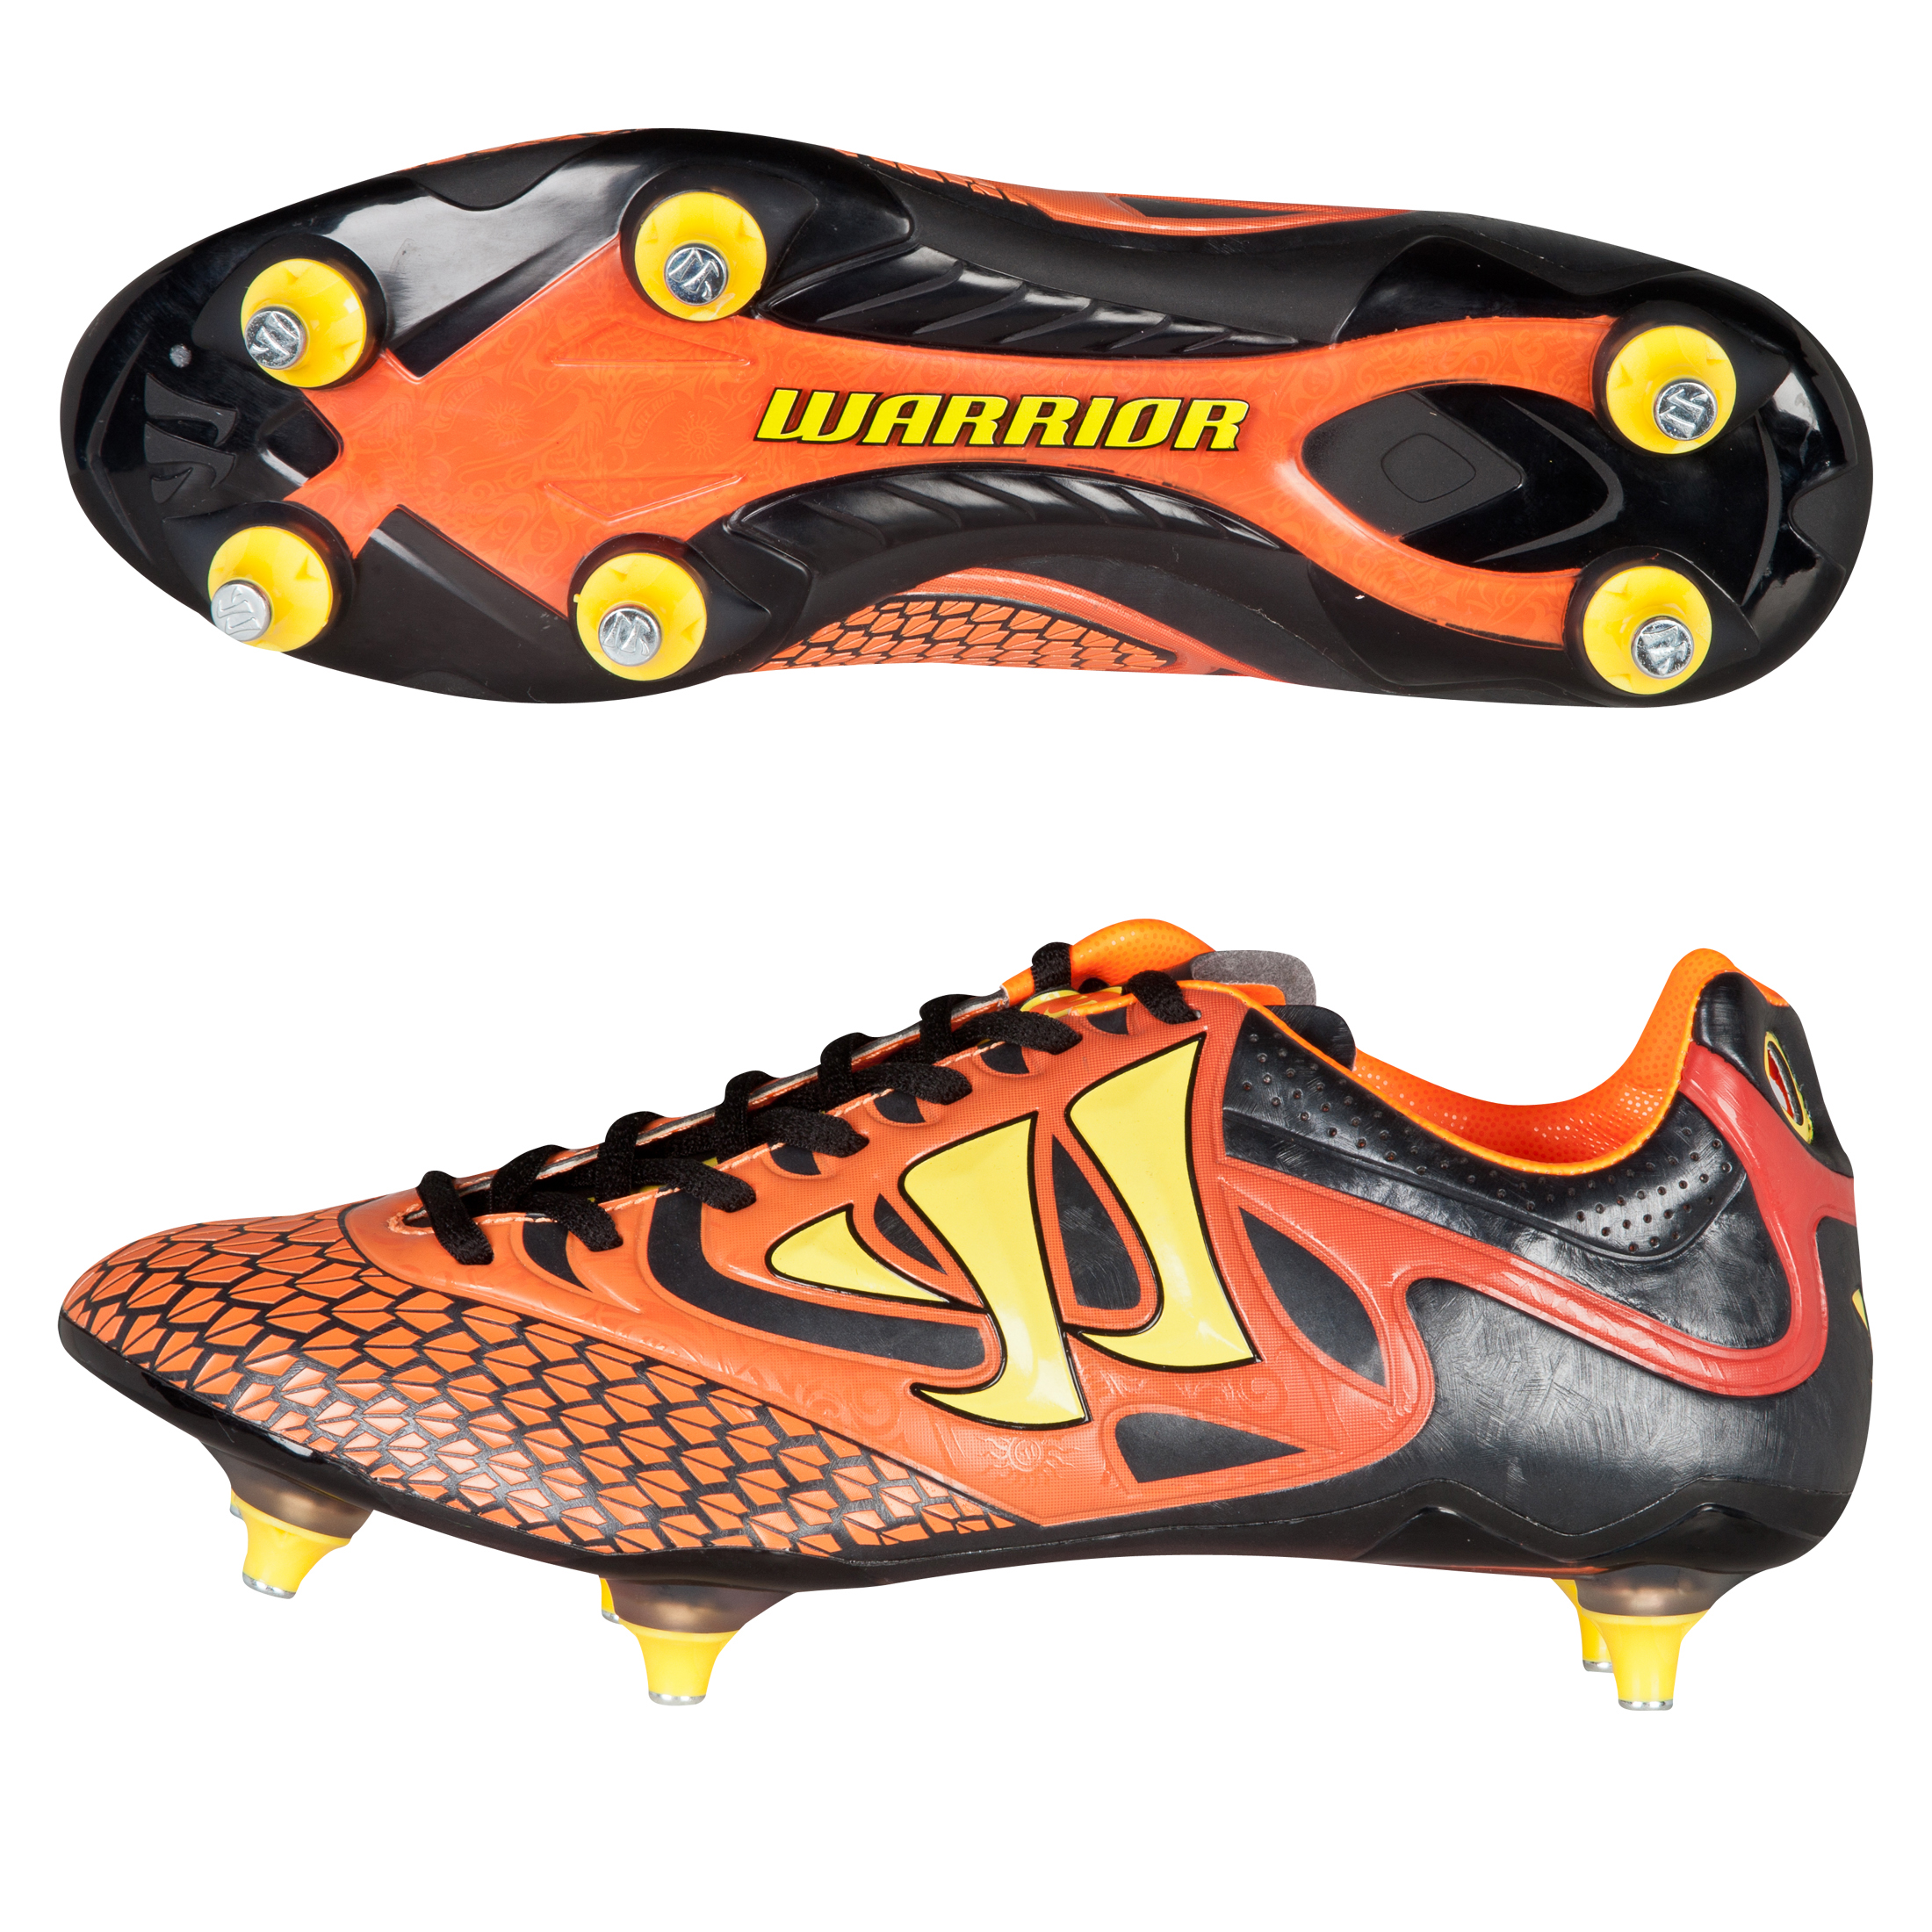 Warrior Sports Skreamer Combat Soft Ground Football Boots-Ebony/Orange/Yellow Black